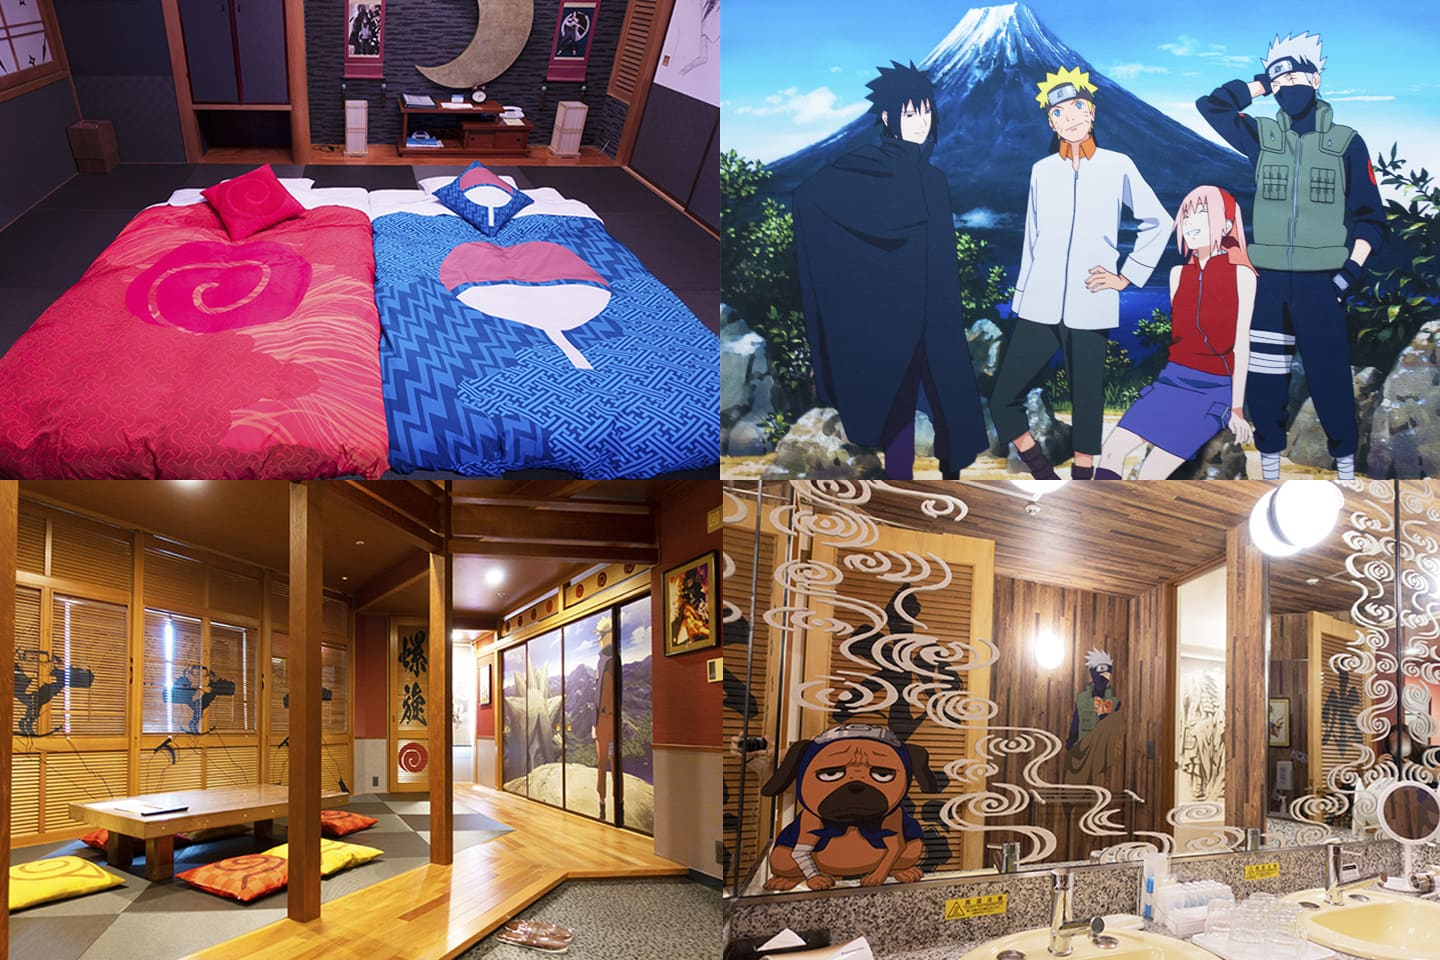 NARUTO Themed Hotel Room at Highland Resort Hotel & Spa